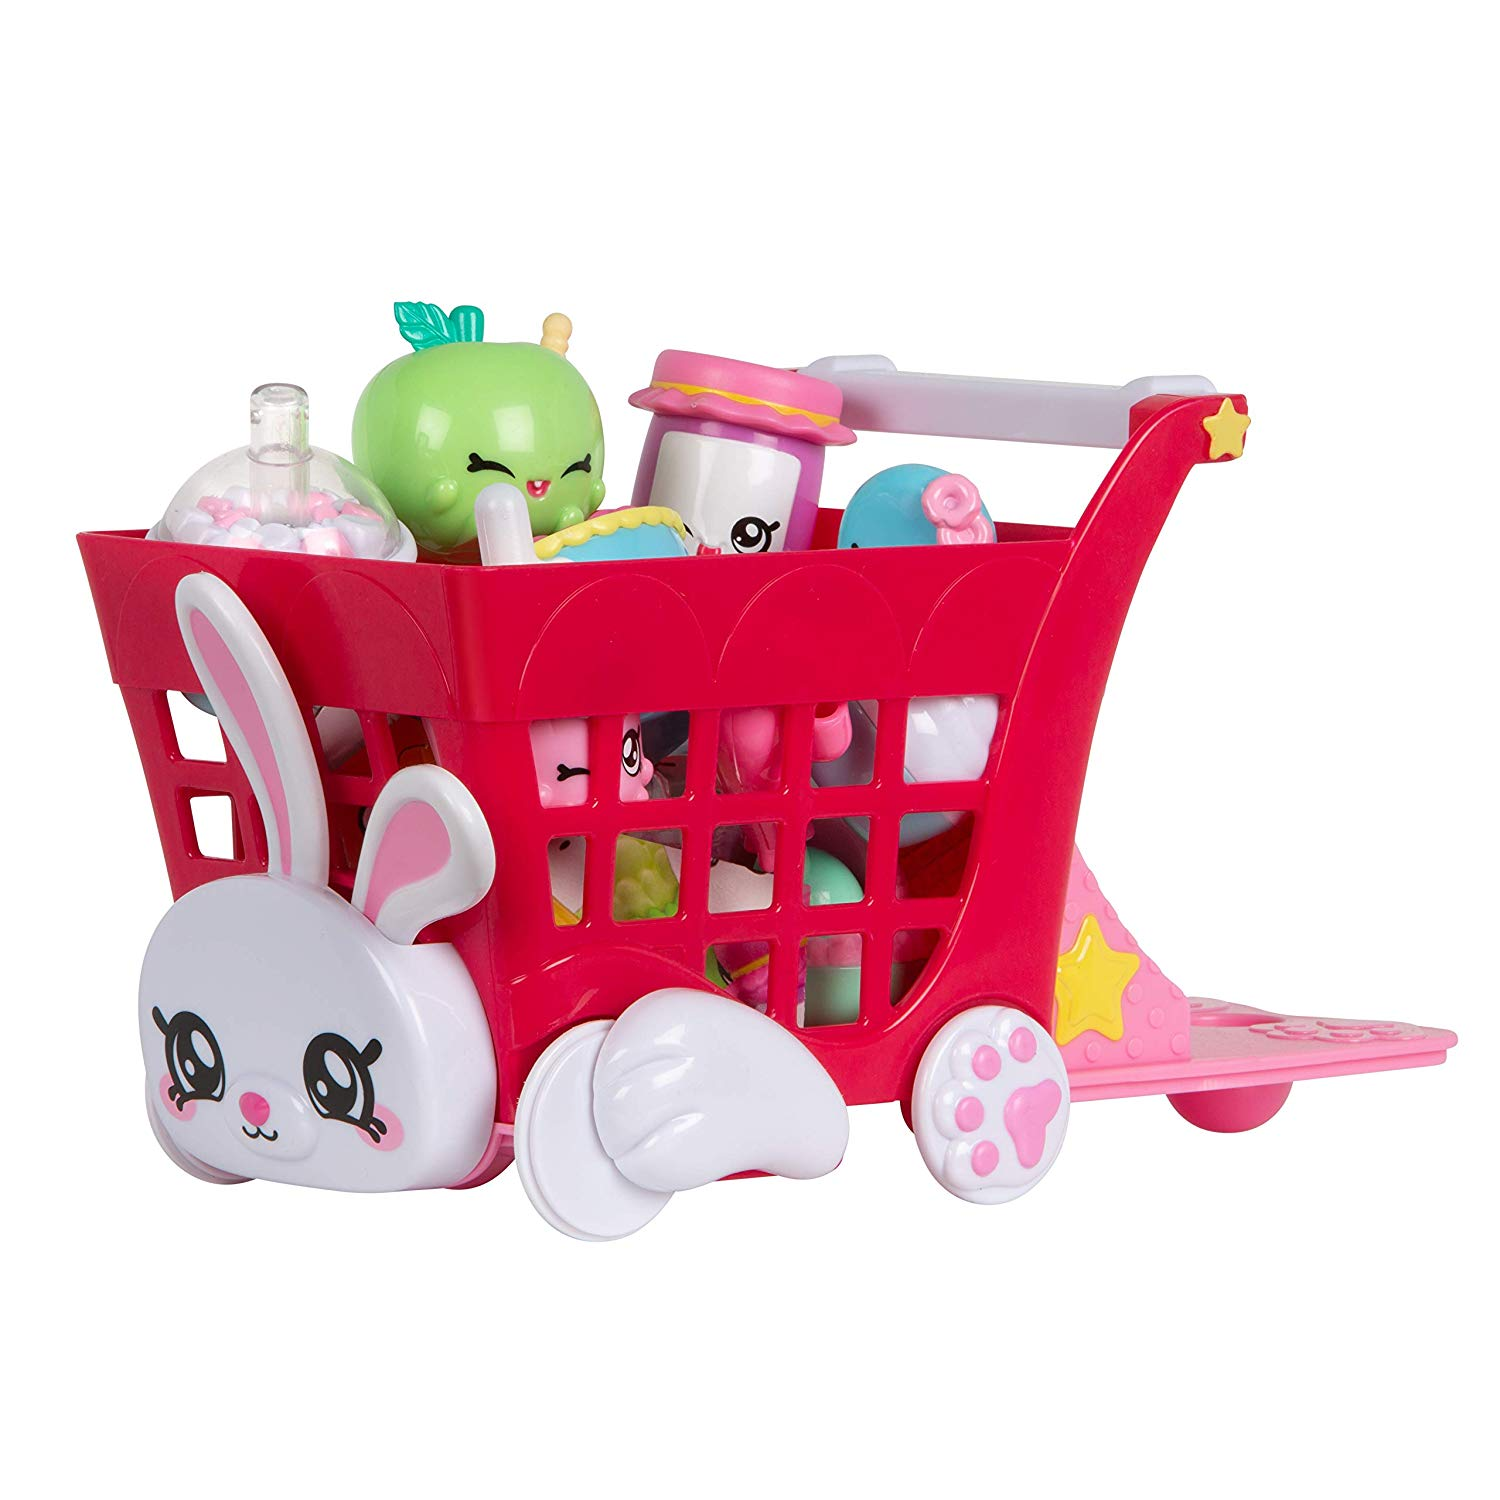 Kindi Kids Rabbit Petkin Shopping Cart realease date